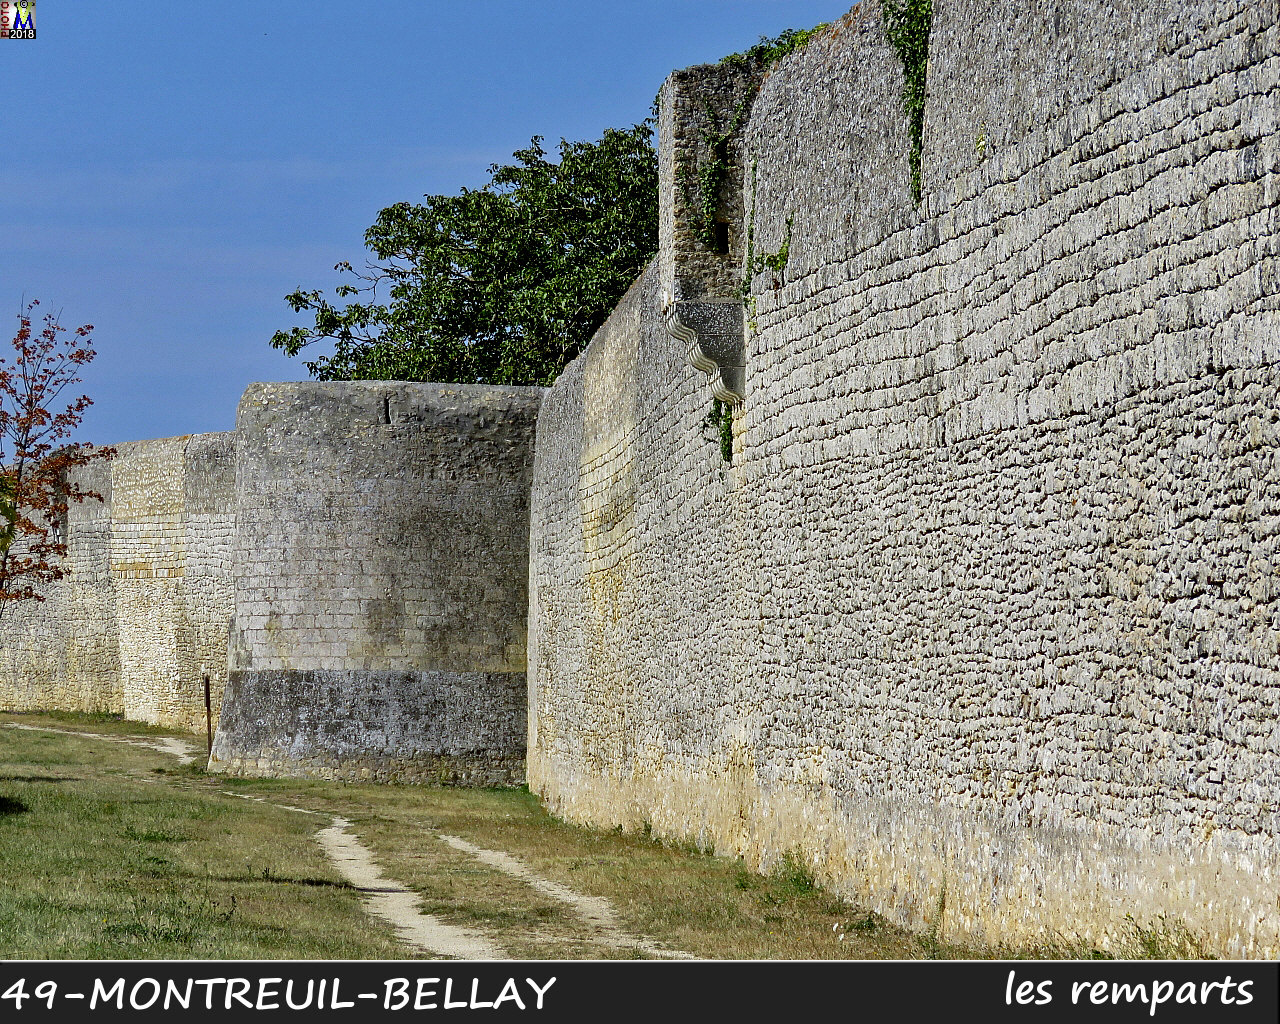 49MONTREUIL-BELLAY_remparts_1004.jpg